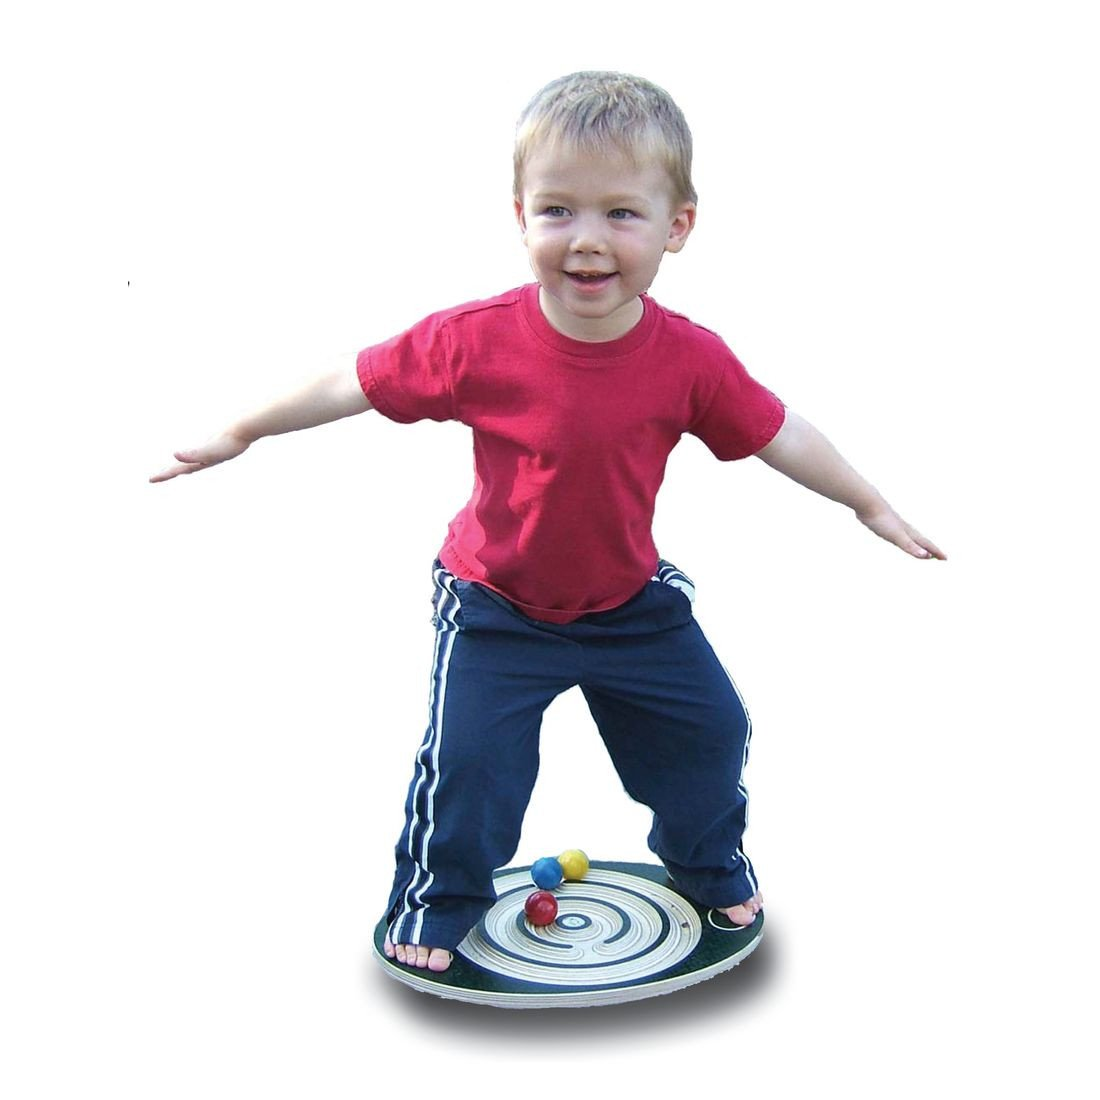 The labyrinth balance board Jr. is great for developing gross motor skills and neurological development in children. Made in the USA.